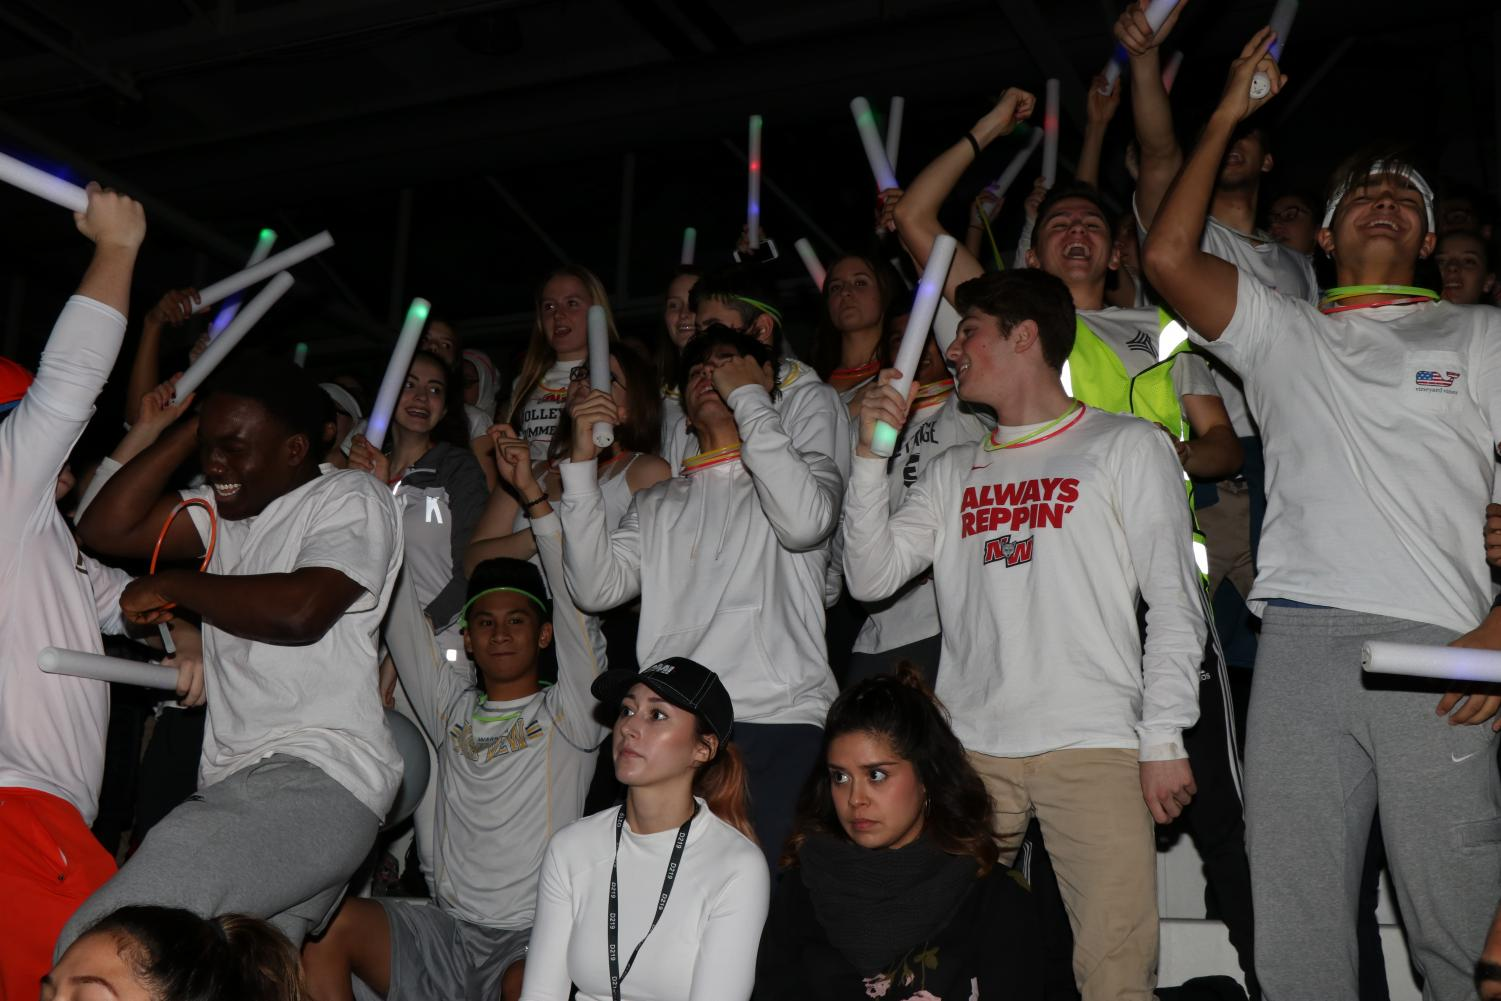 Senior class wears white to show off their school spirt at pep assembly.